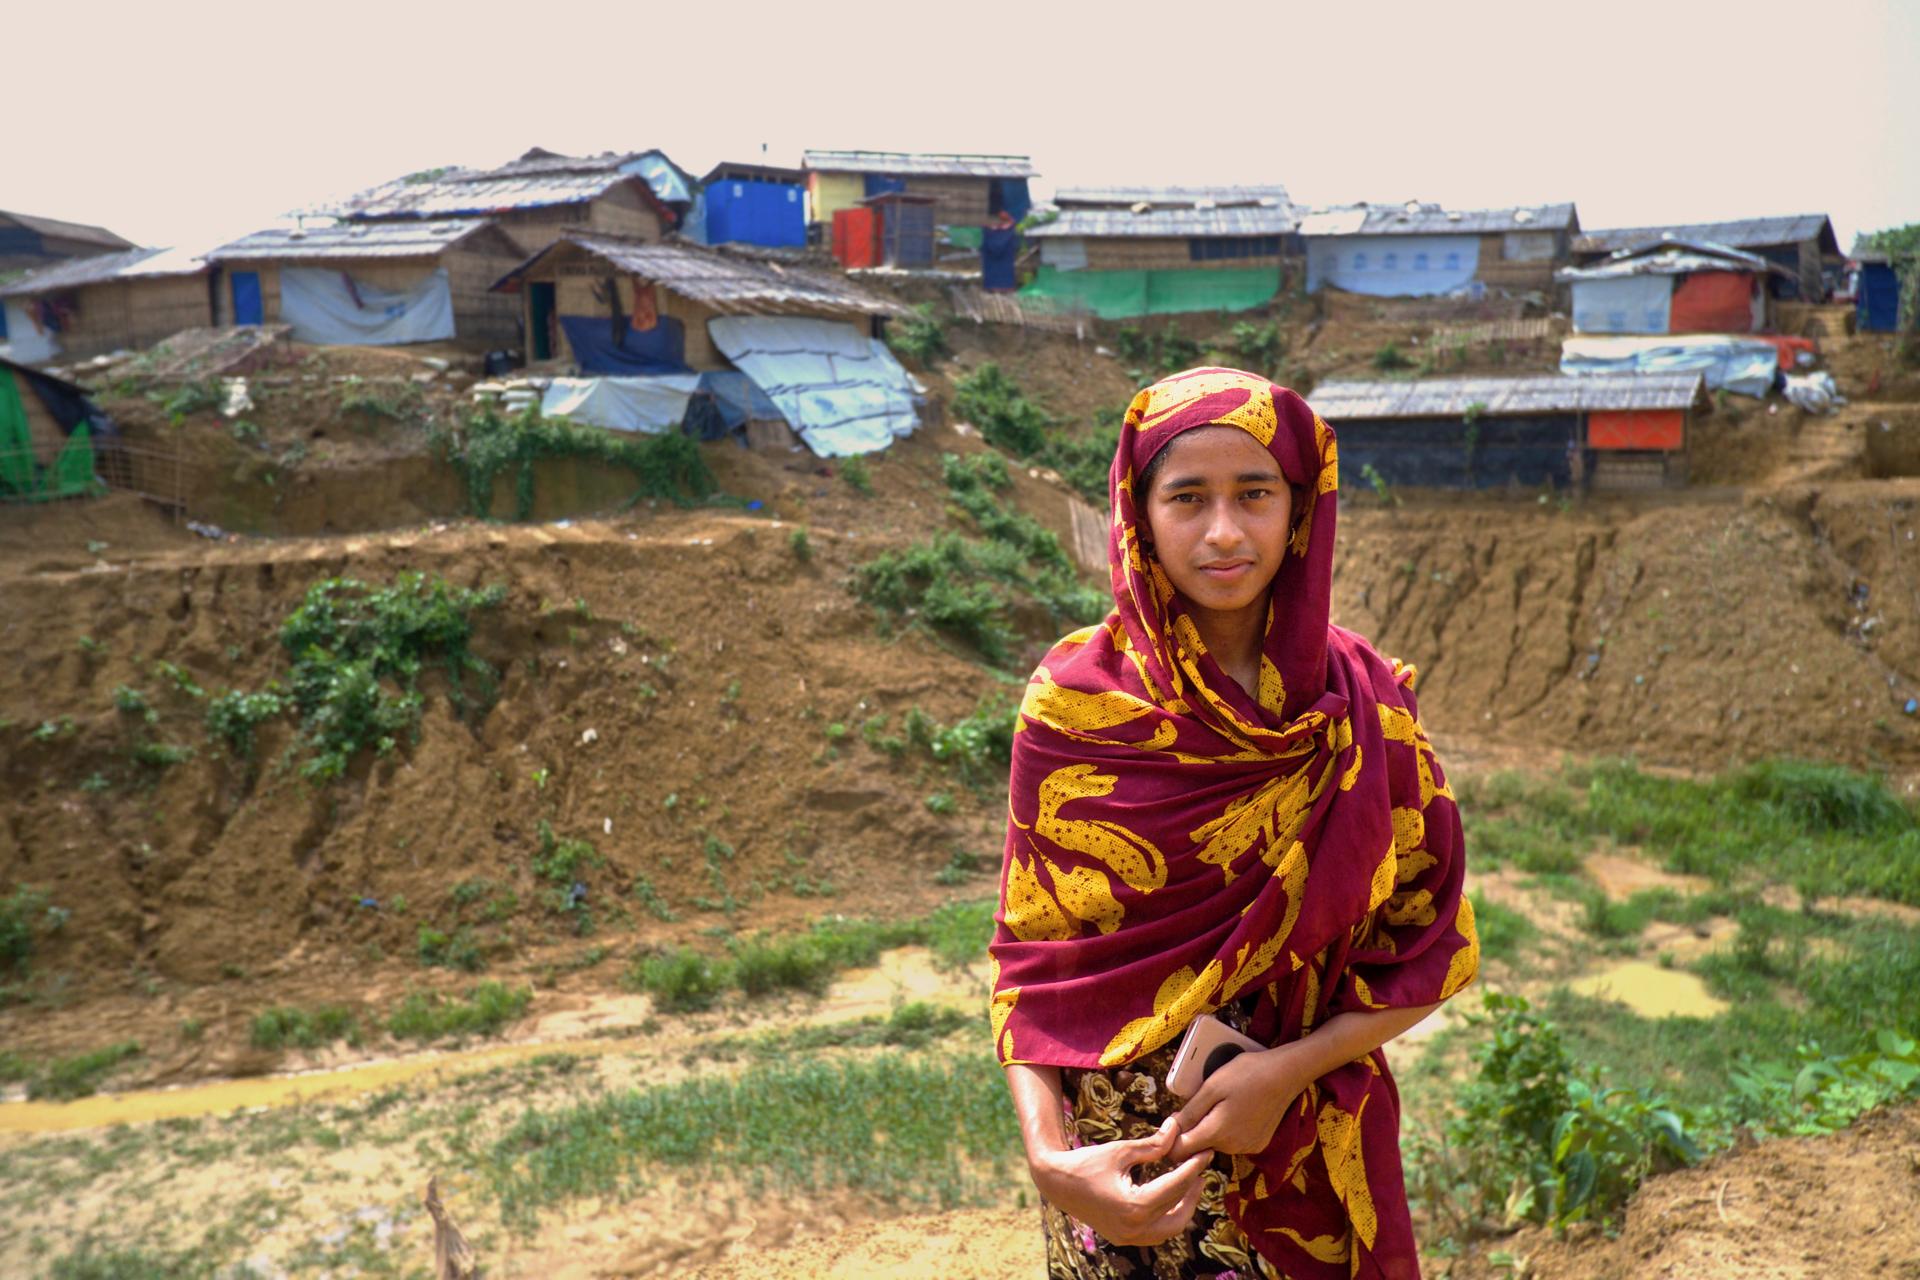 A woman looks at the camera in front of a refugee camp in Bangladesh